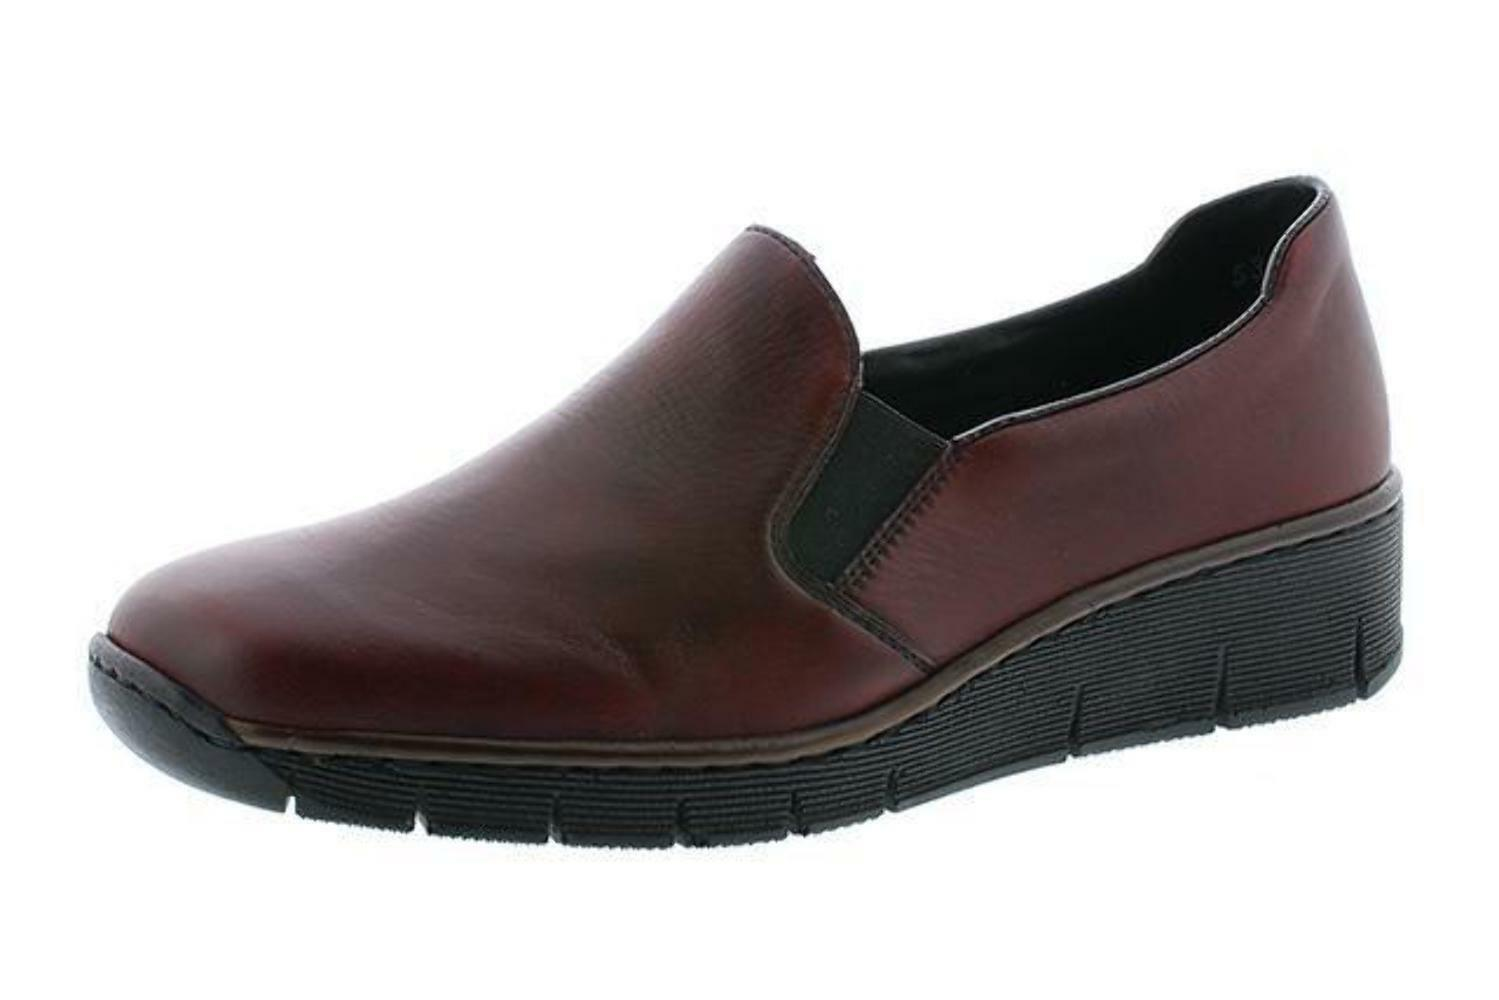 Rieker 53766-36 53766-36 53766-36 rouge Leather Slip on chaussures 6c9010